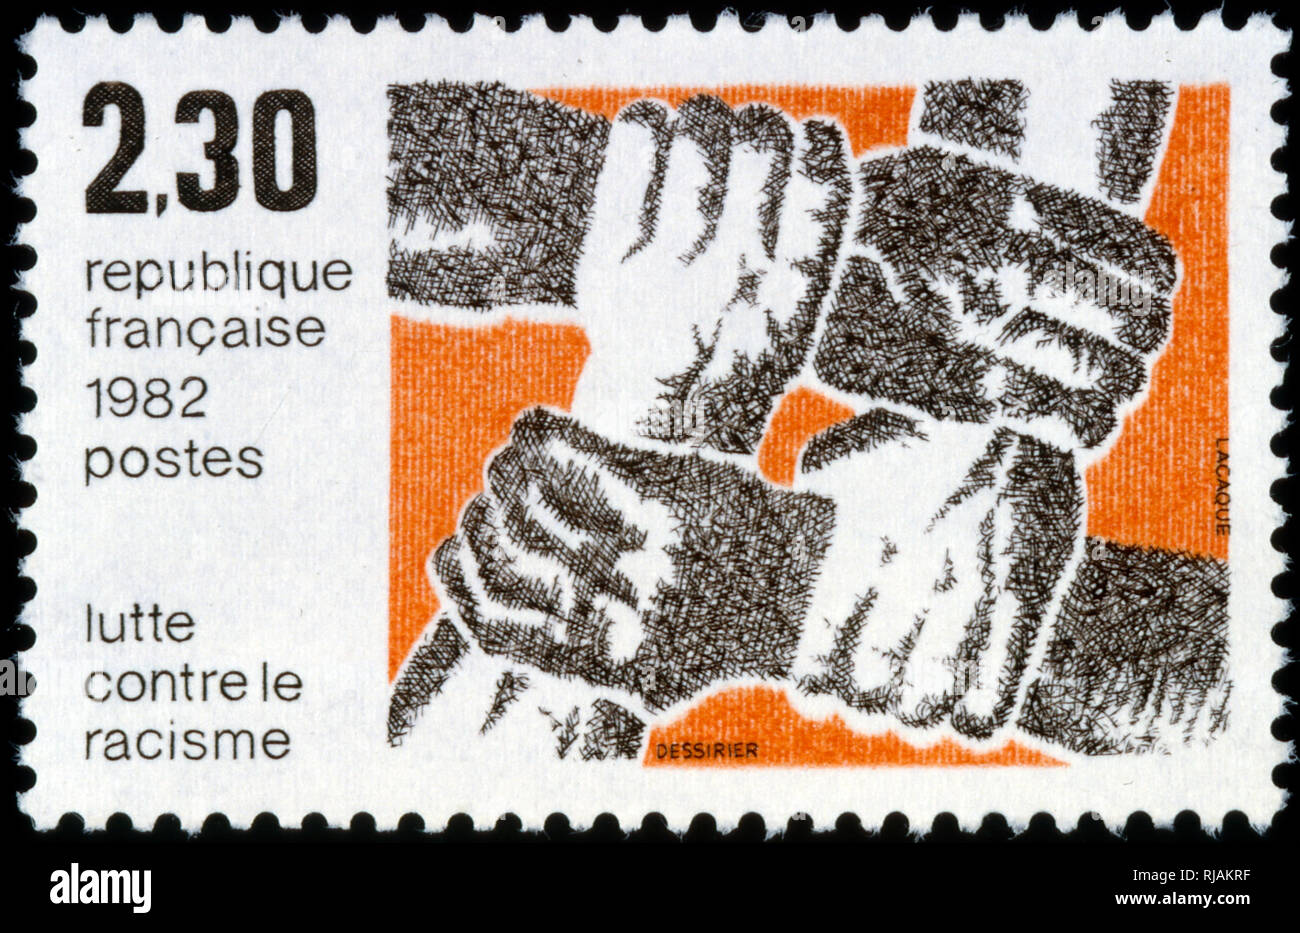 French postage stamp celebrating anti-racism in France 1982 - Stock Image